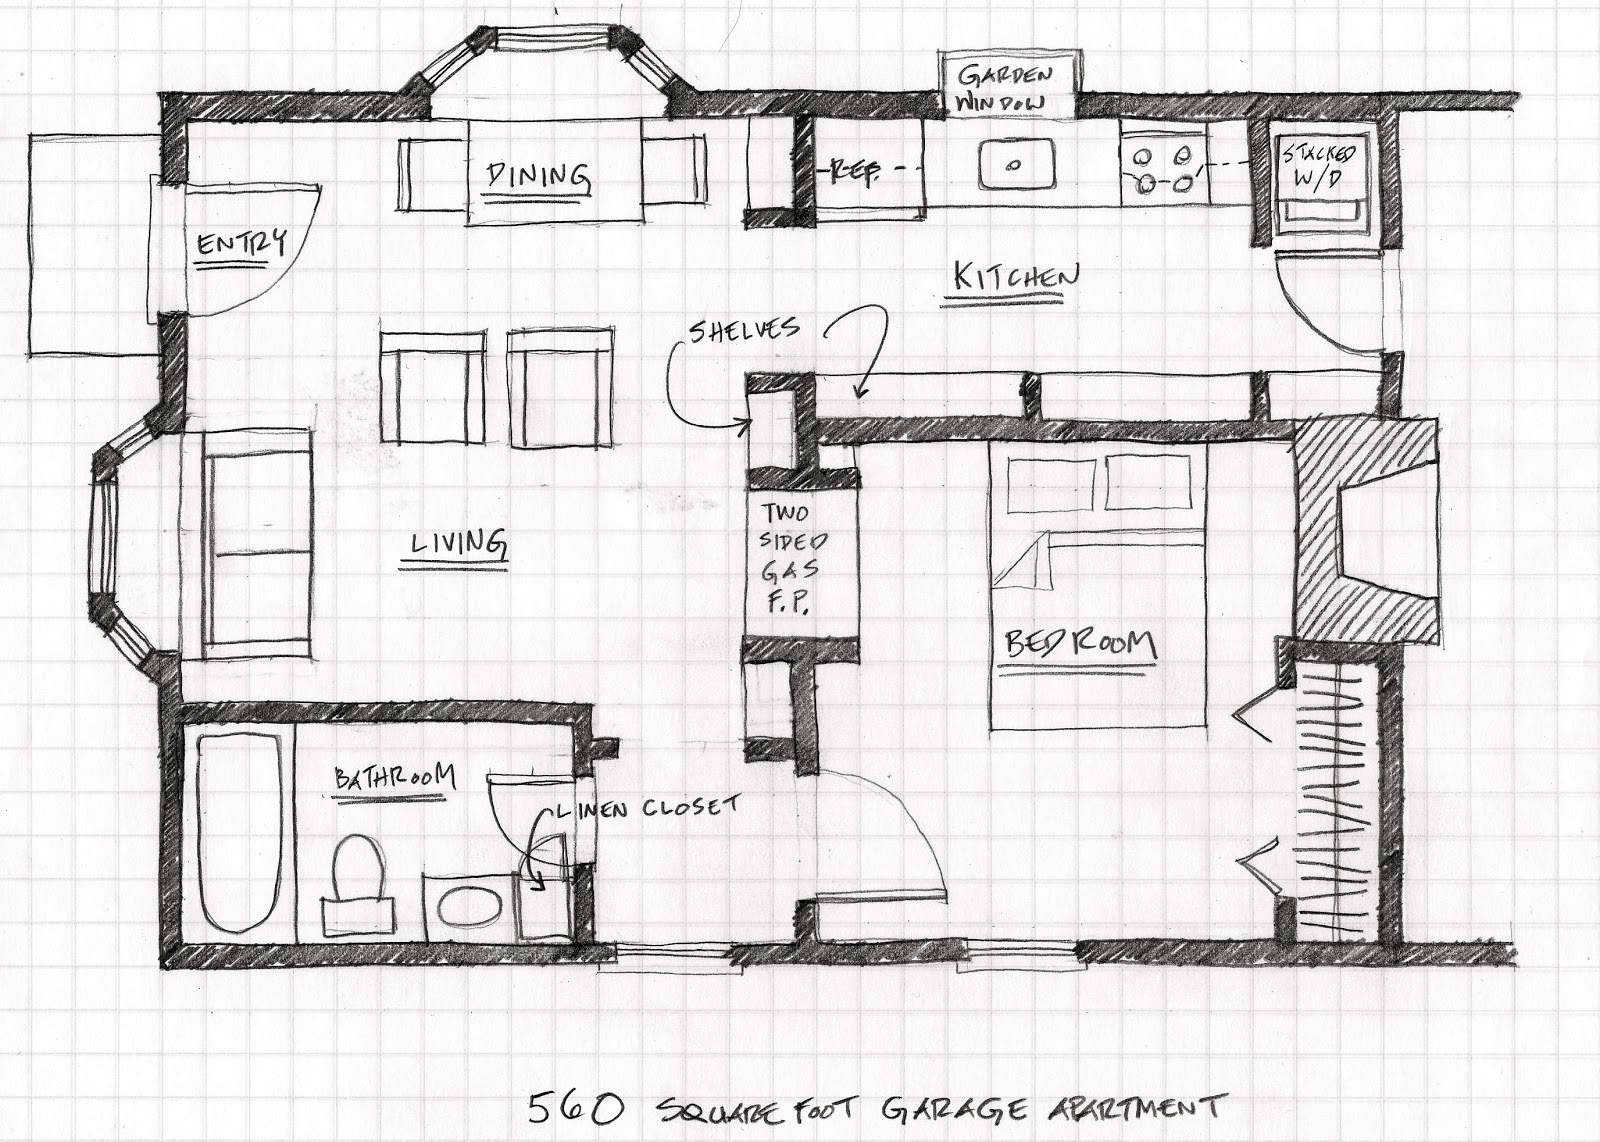 Small Scale Homes Floor Plans Garage Apartment